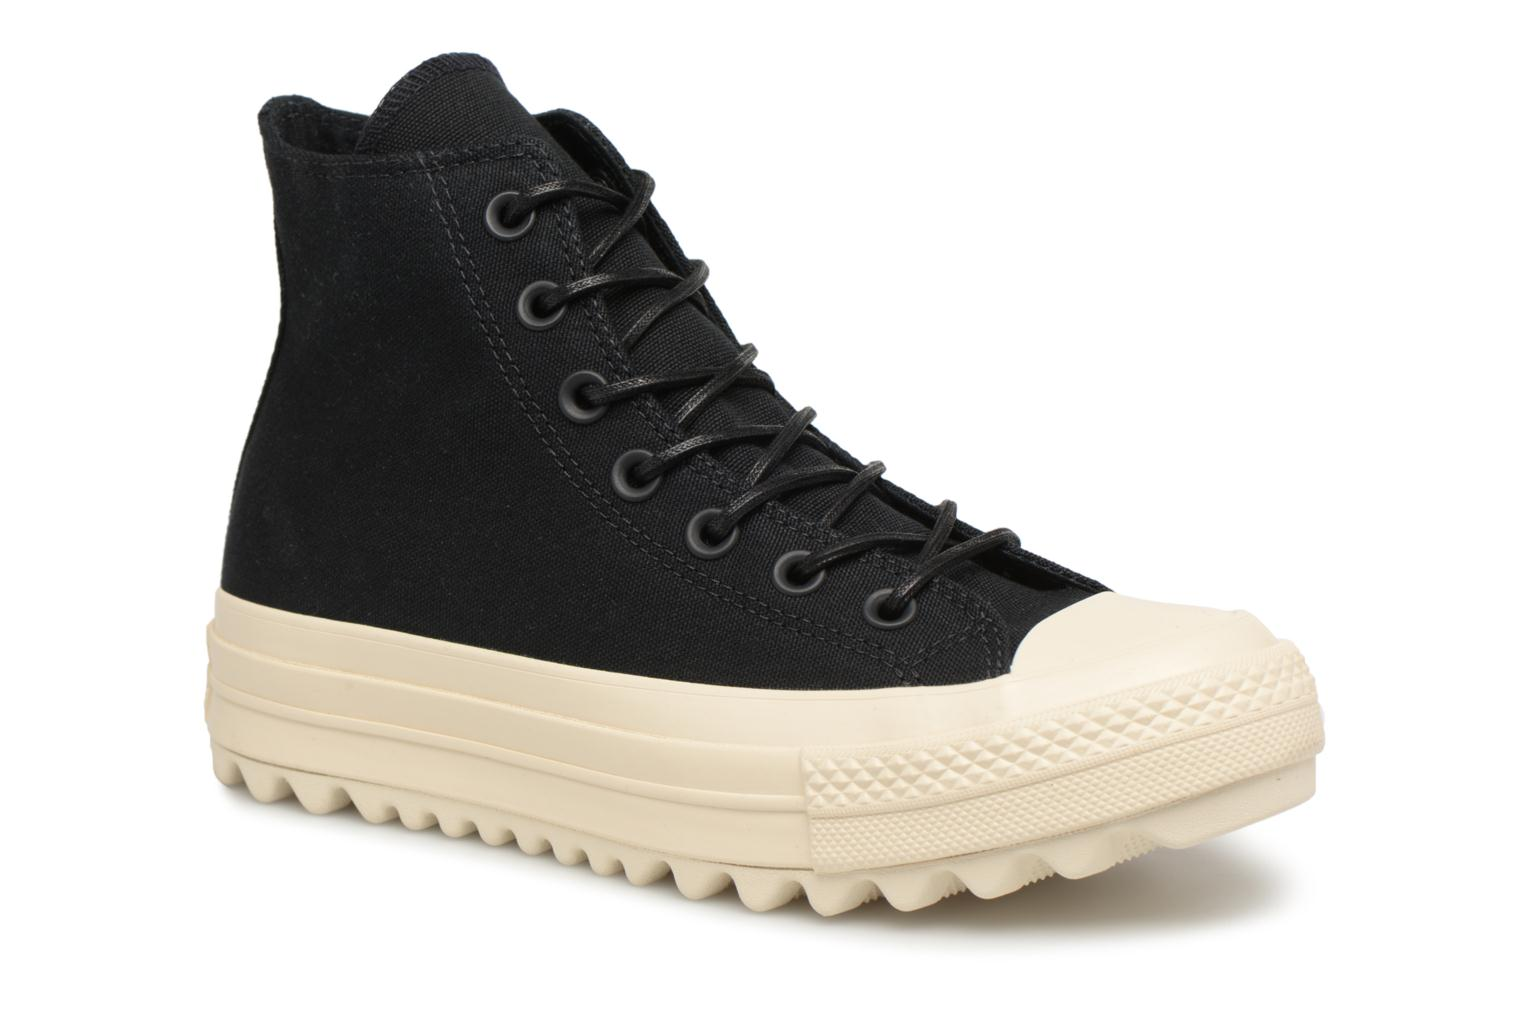 Star Lift Taylor Converse All noir Ripple Hi Chuck Canvas qBUpxTnt